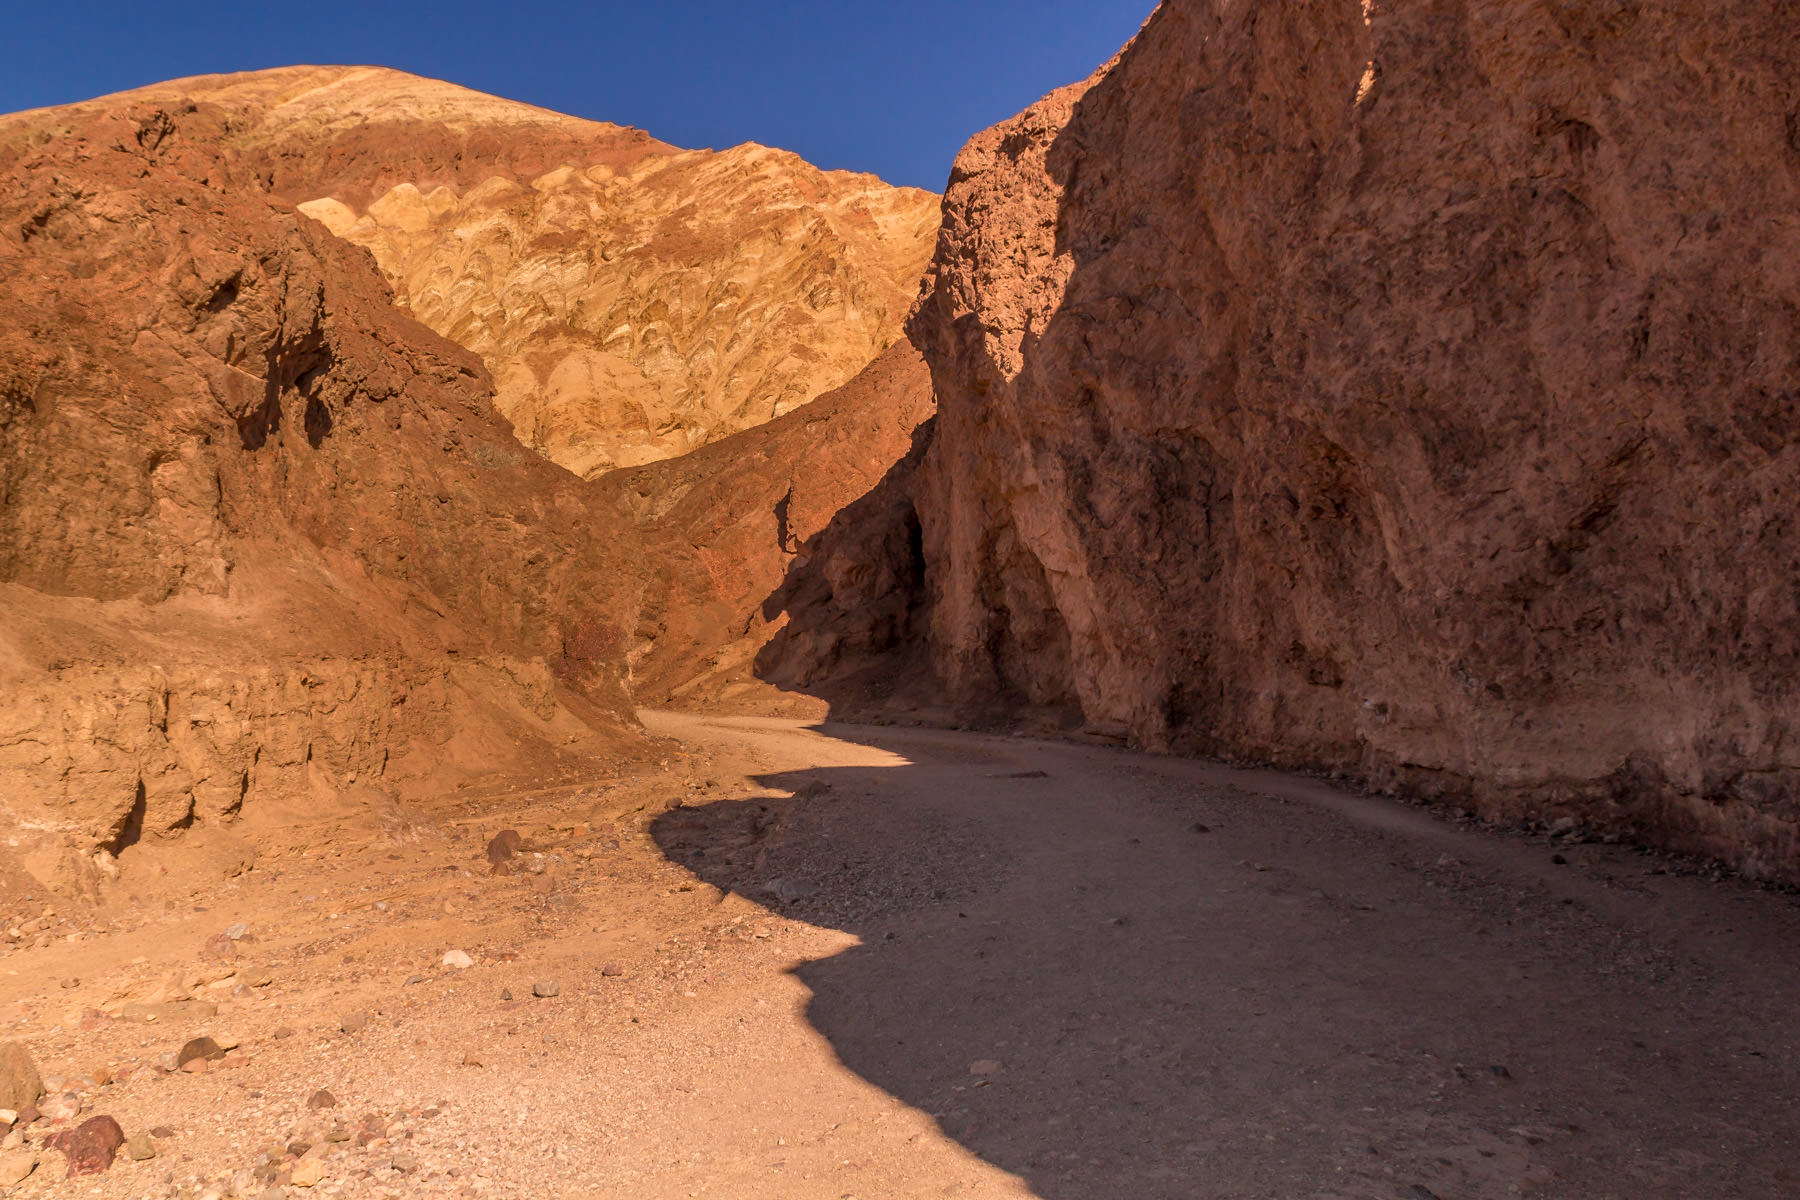 A craggy passage through a rocky crevasse at Death Valley National Park, California.